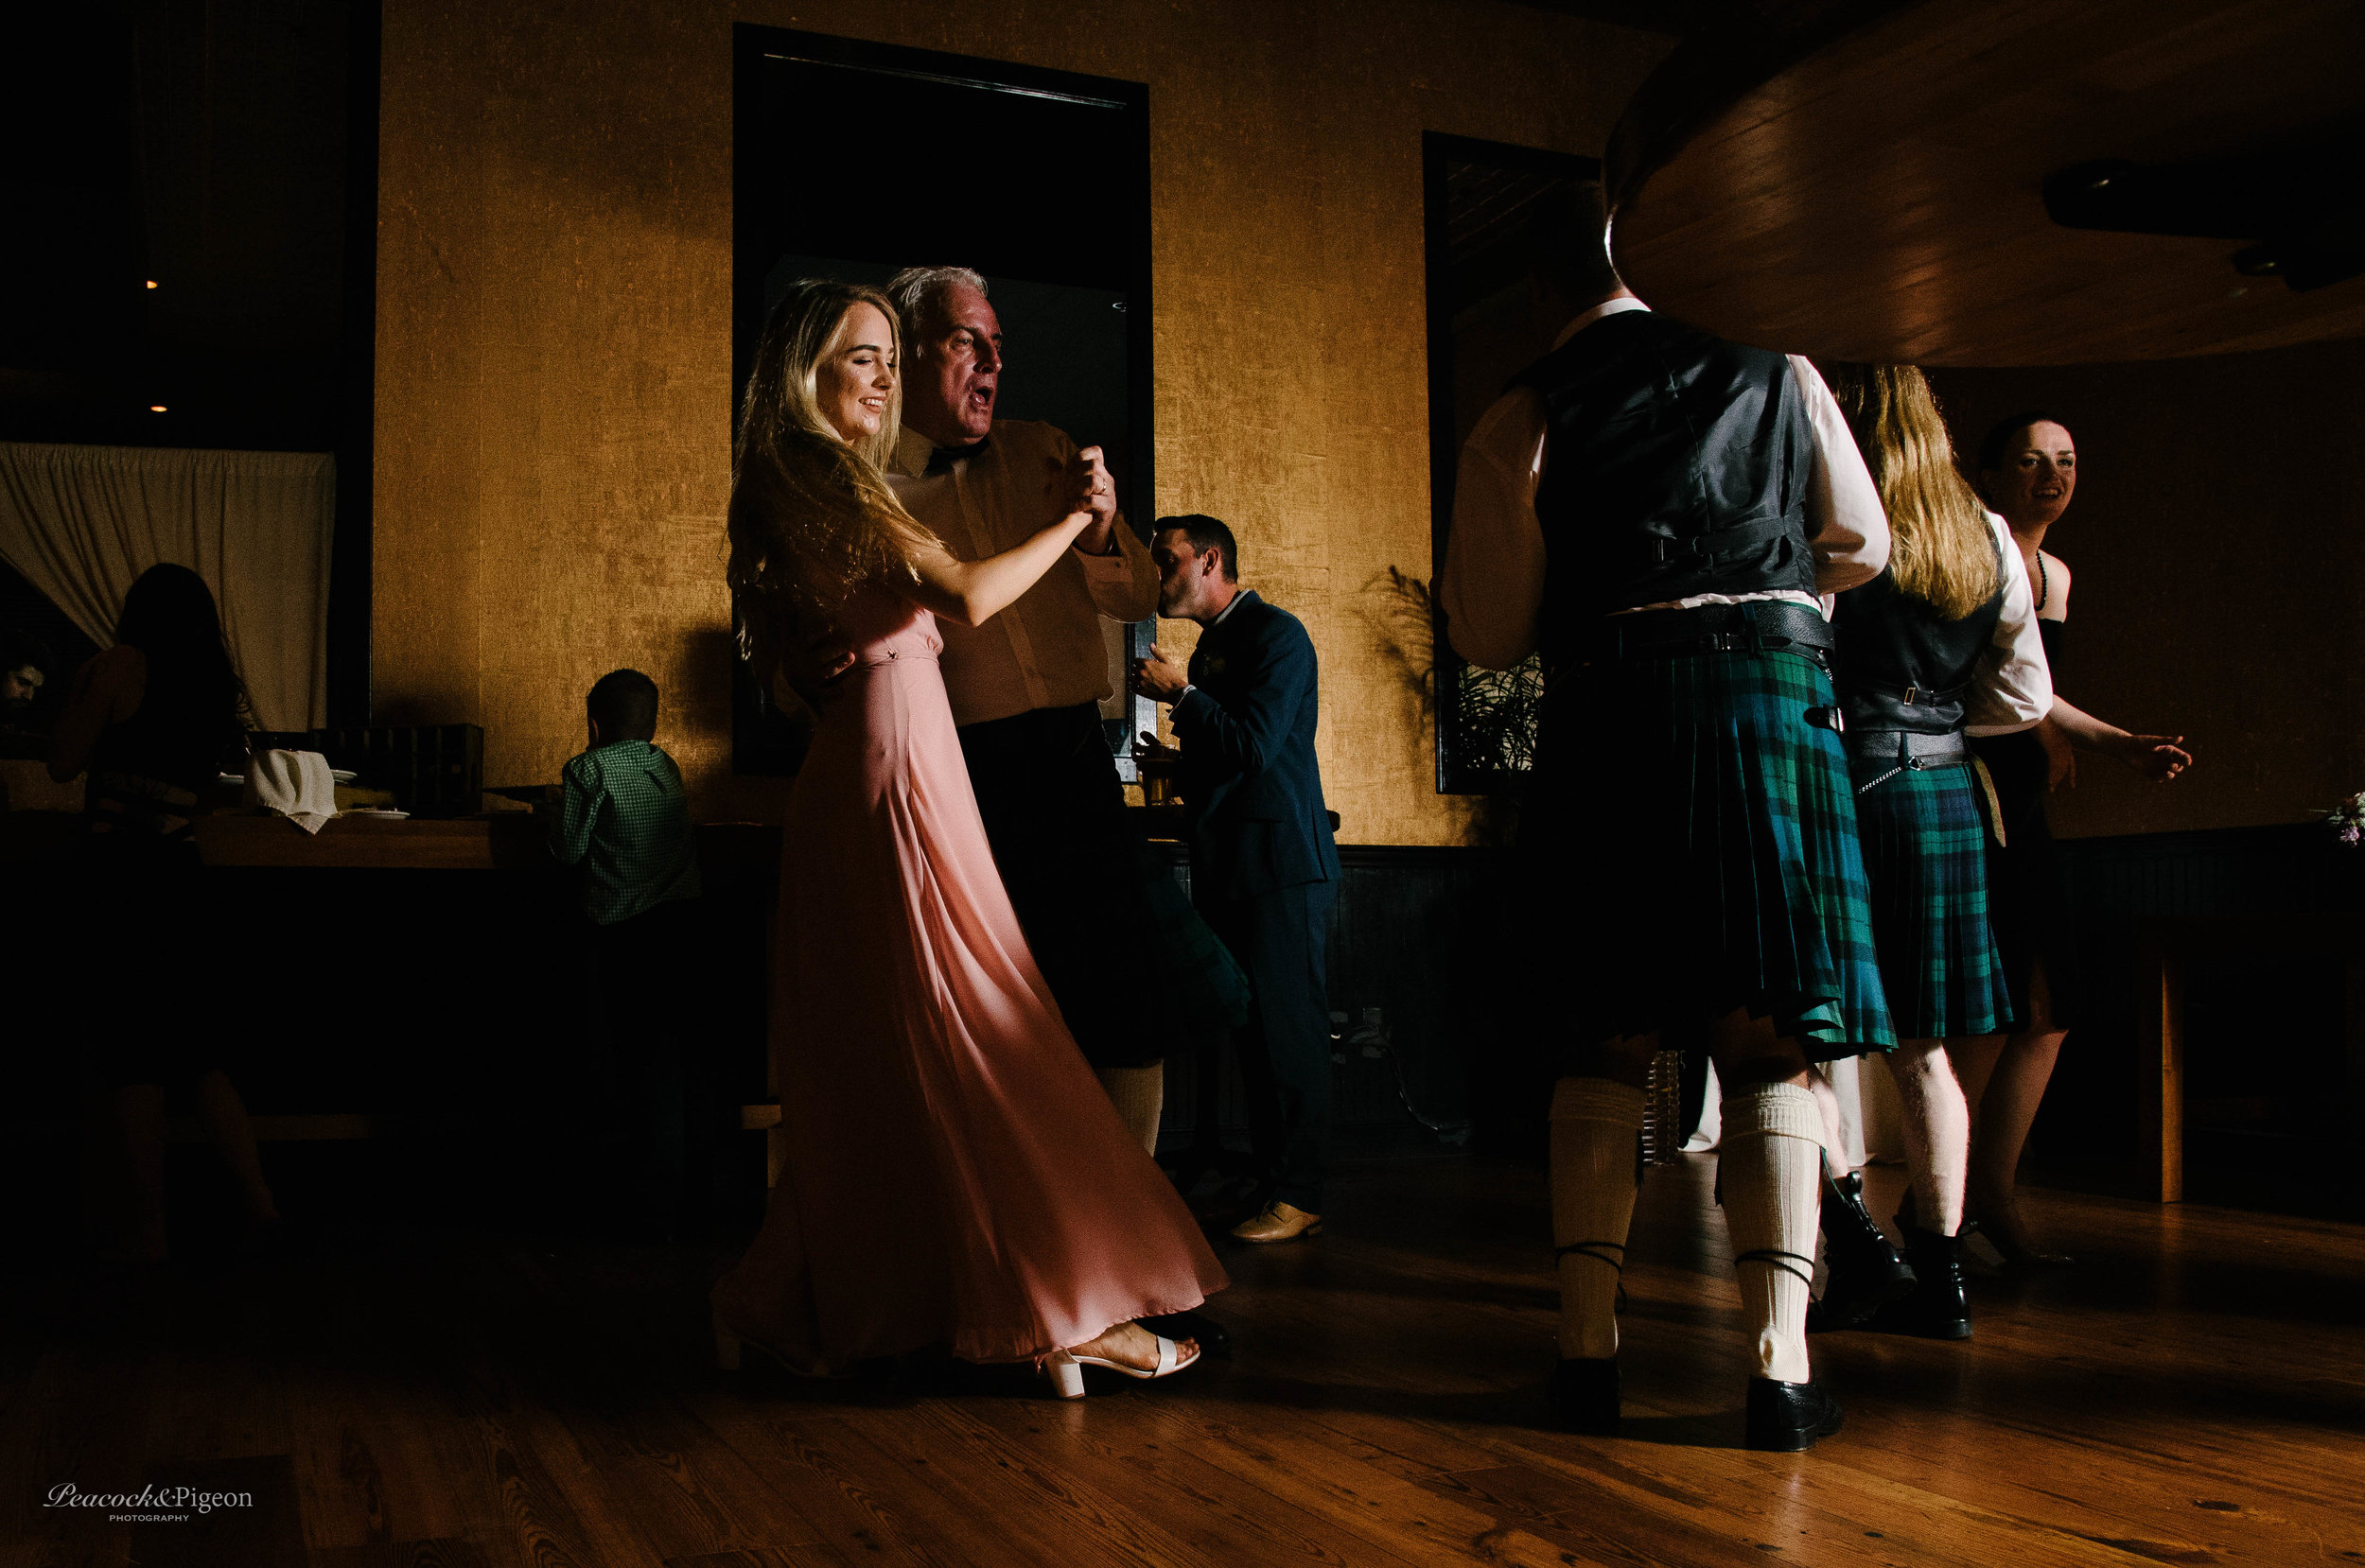 Callum_and_Sara's_Wedding_at_the_Cork_Factory_Hotel_in_Lancaster-Part_Ten_Dancing_Watermarked-20.jpg